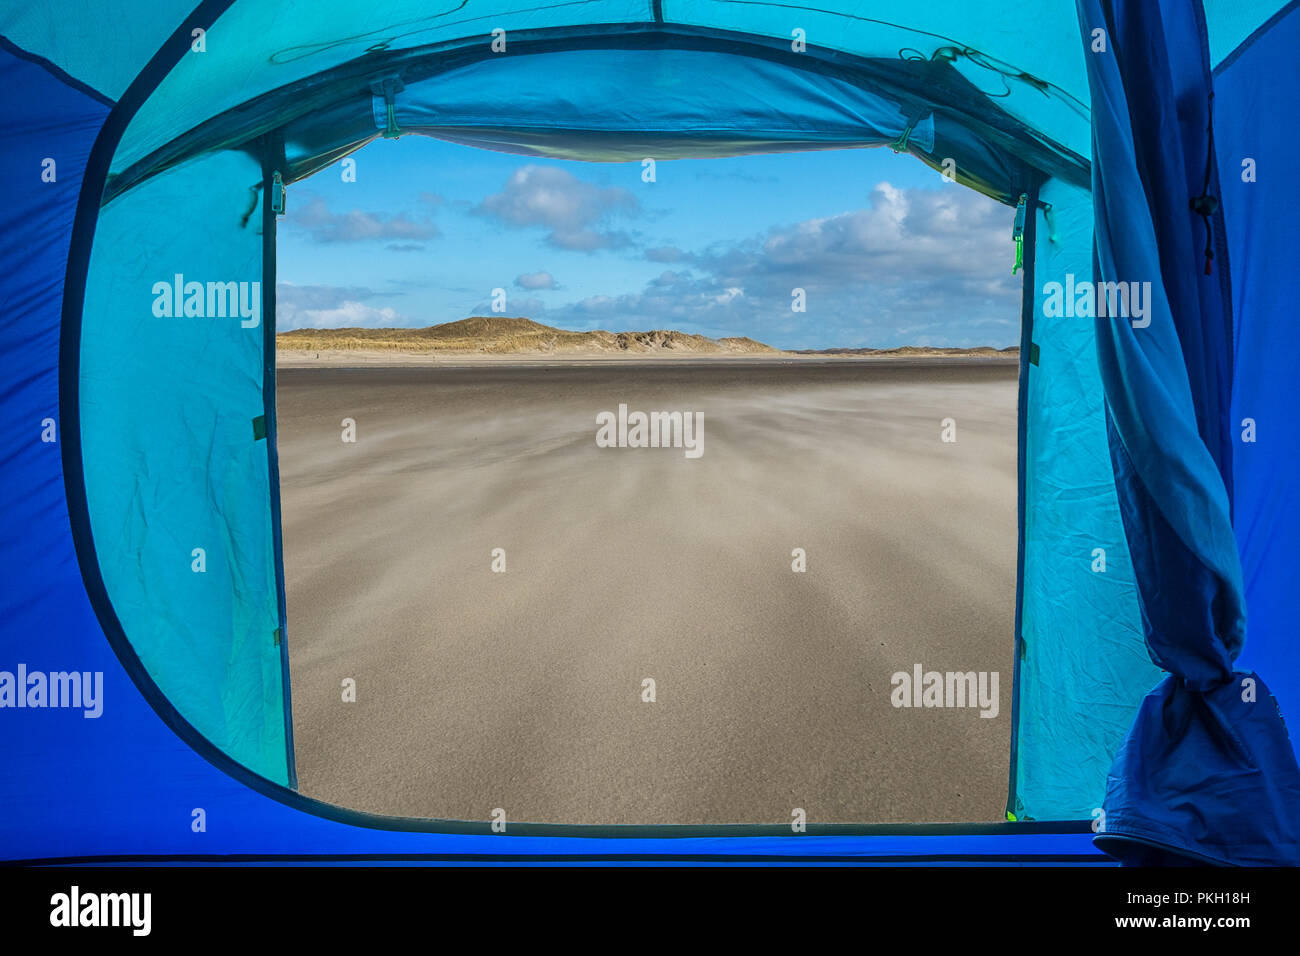 View from inside a tent onto a beach in Texel, the Netherlands. - Stock Image